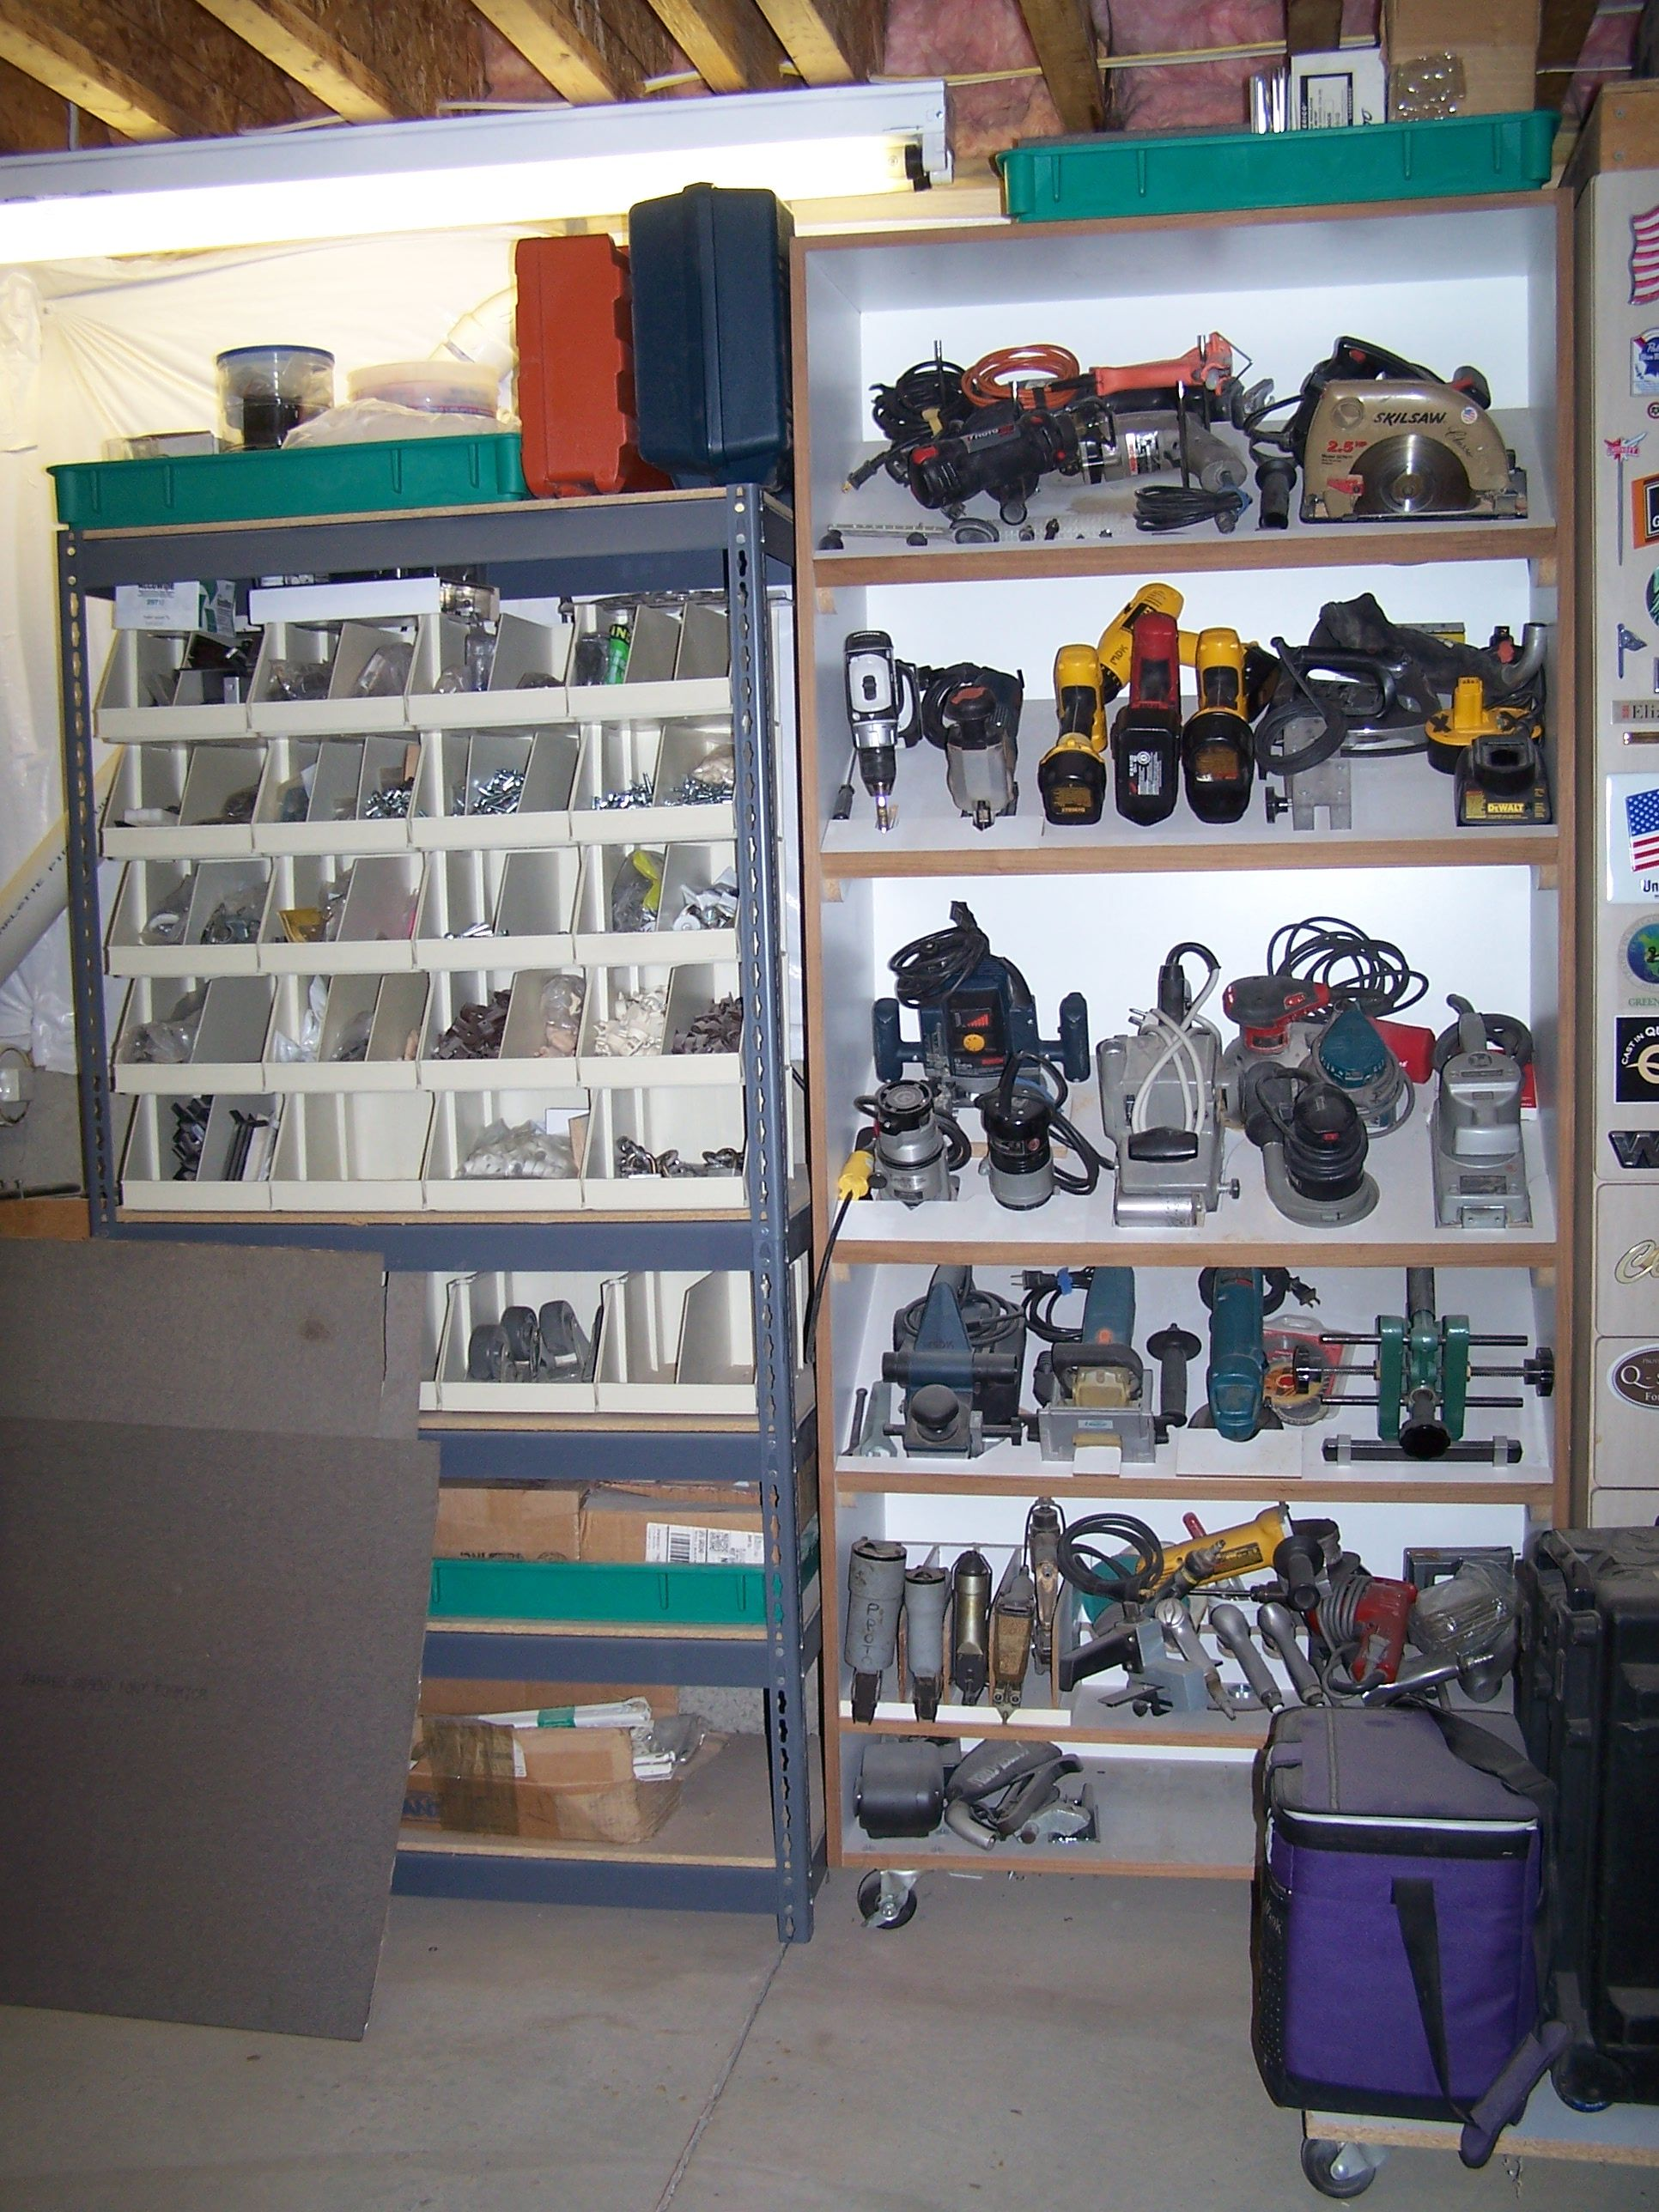 Lovely Tools Organized Ideas For The Garage ? Love The Slanted Shelves For The Power  Tools!